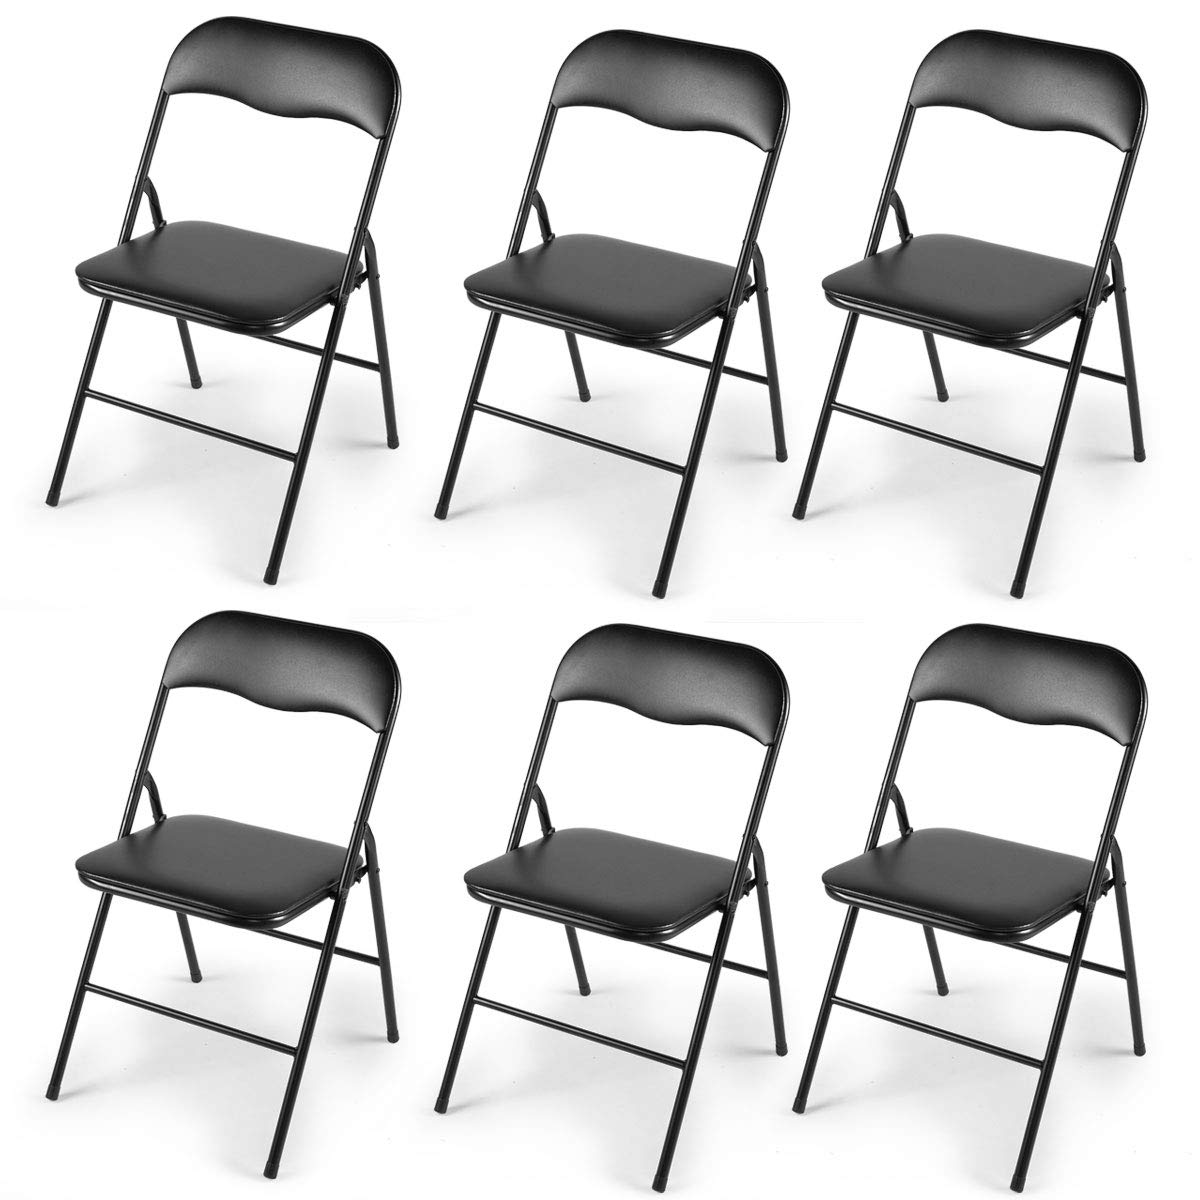 JAXPETY 6PCS Commercial Wedding Quality Stack-able Plastic Folding Chairs Black W/Soft Cushion by JAXPETY